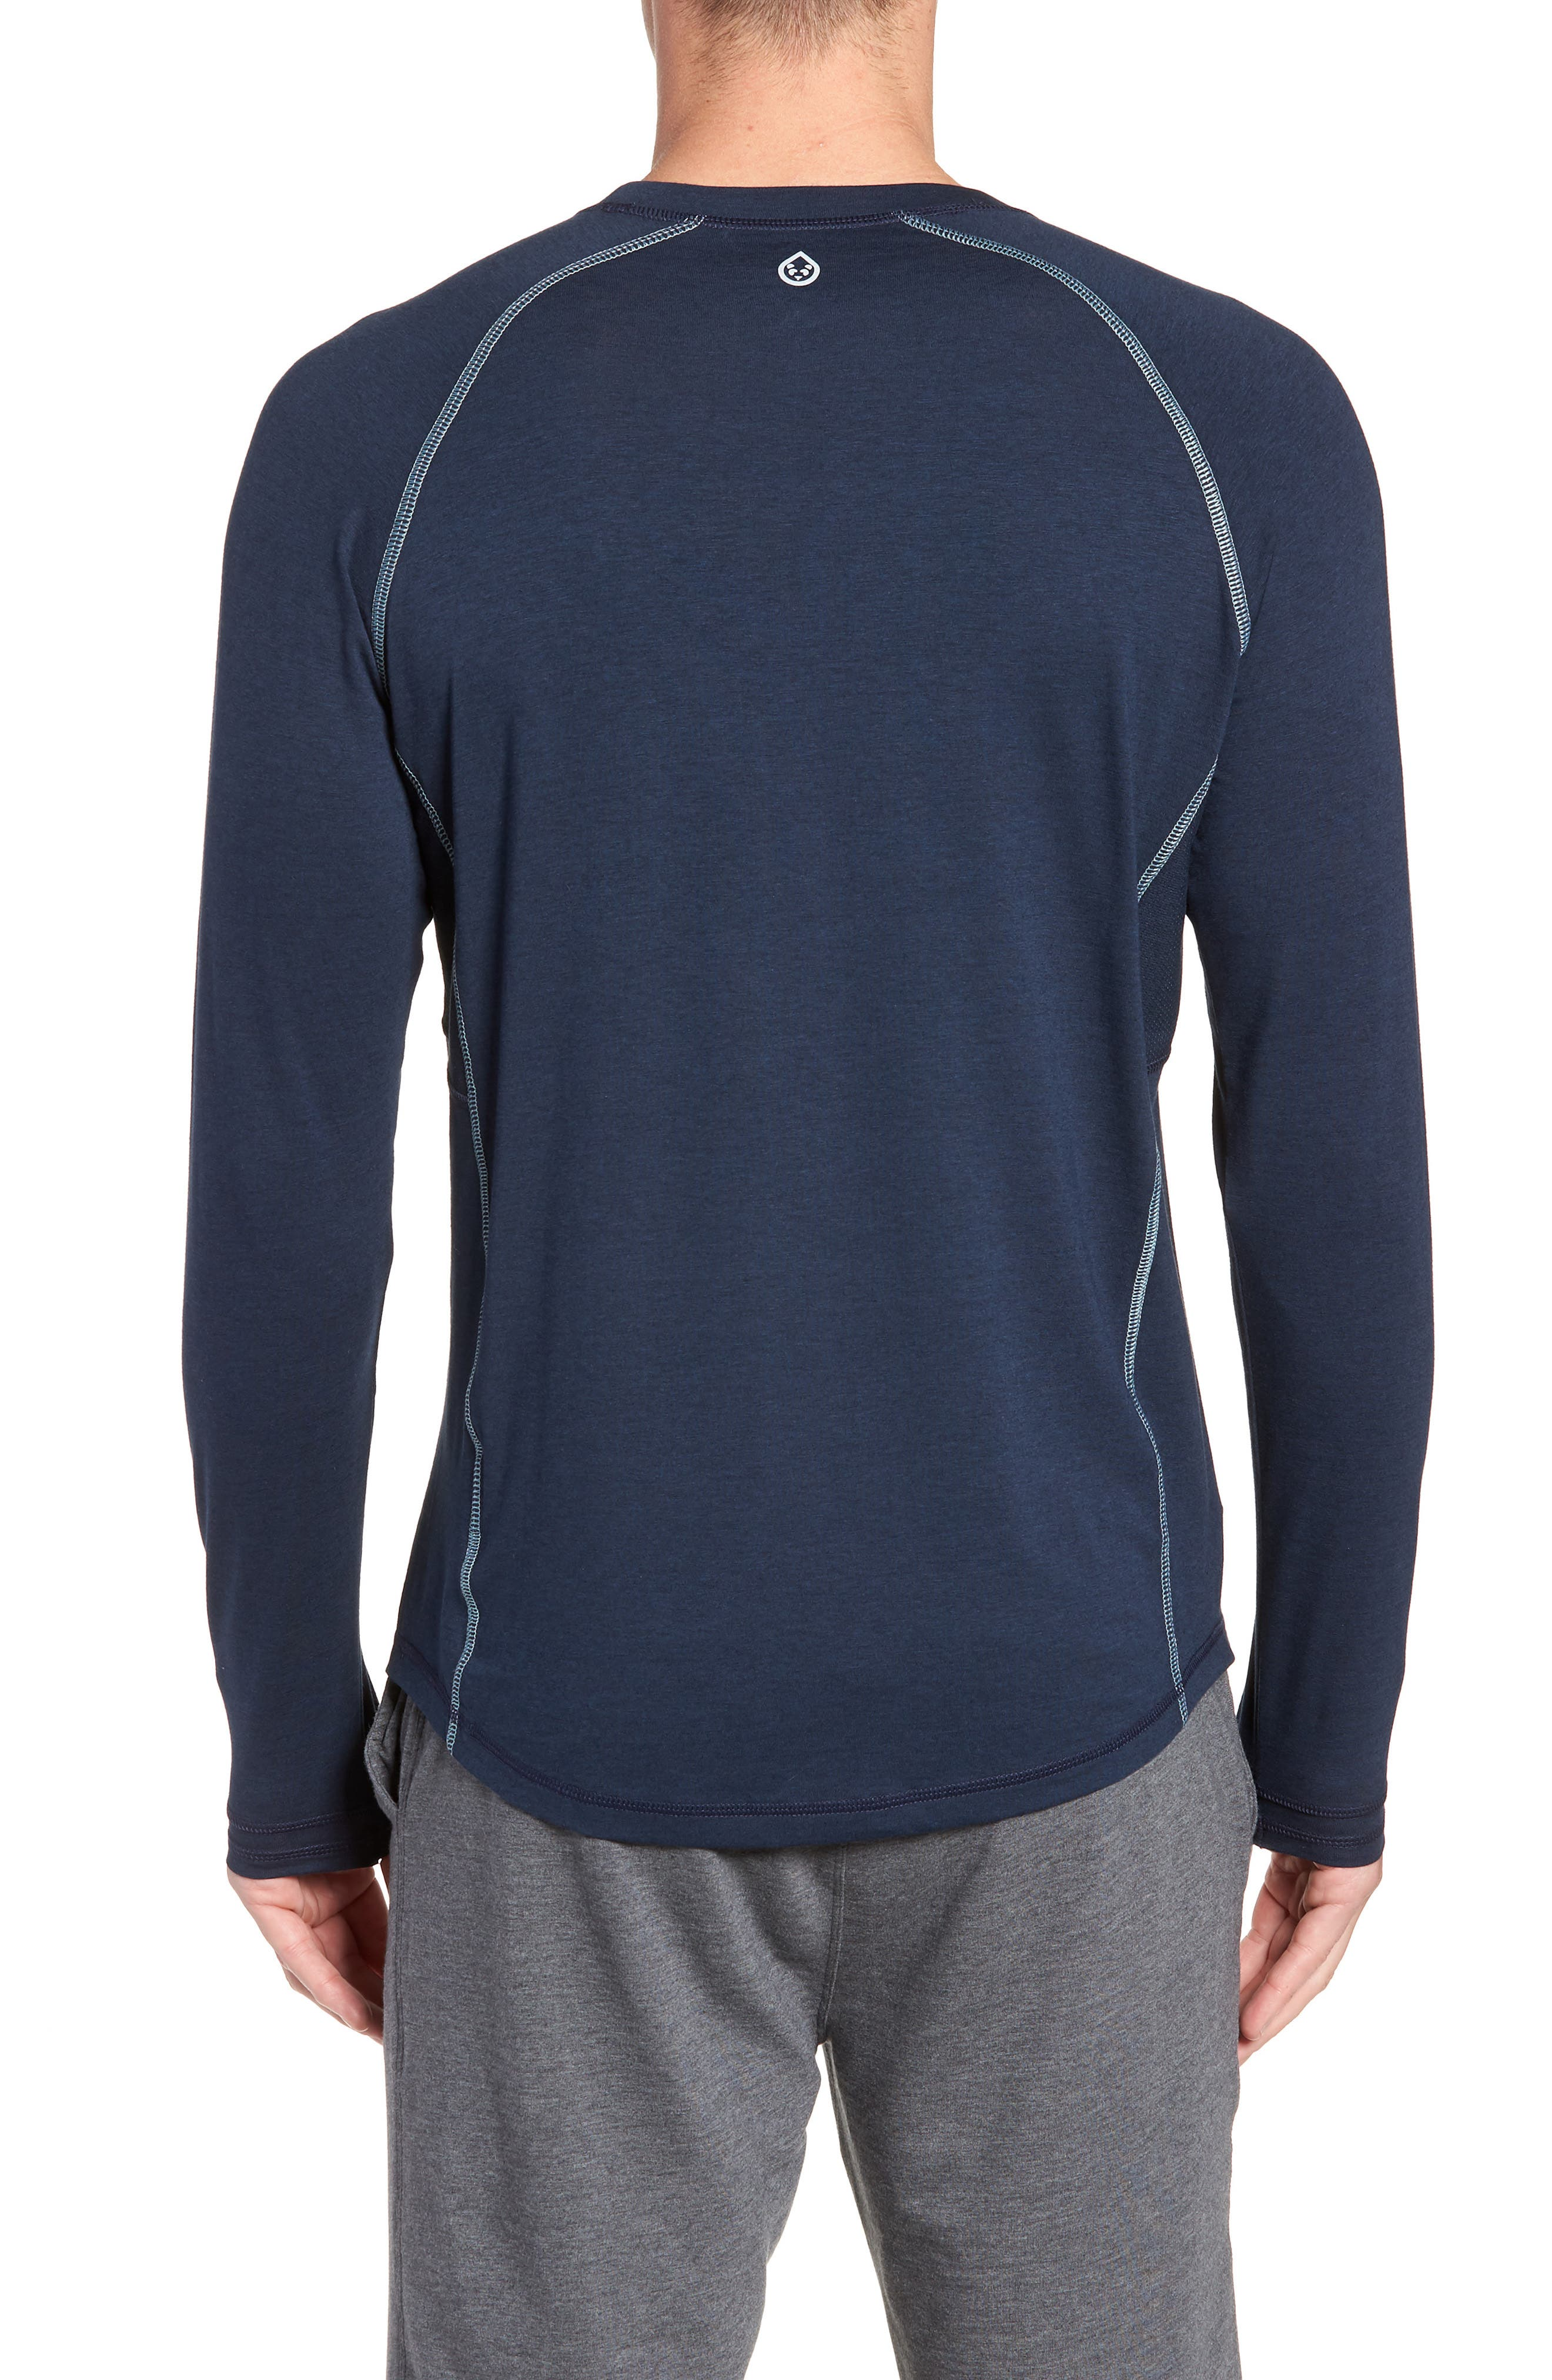 Charge II Long Sleeve T-Shirt,                             Alternate thumbnail 2, color,                             CLASSIC NAVY/ TRANQUILITY SEA